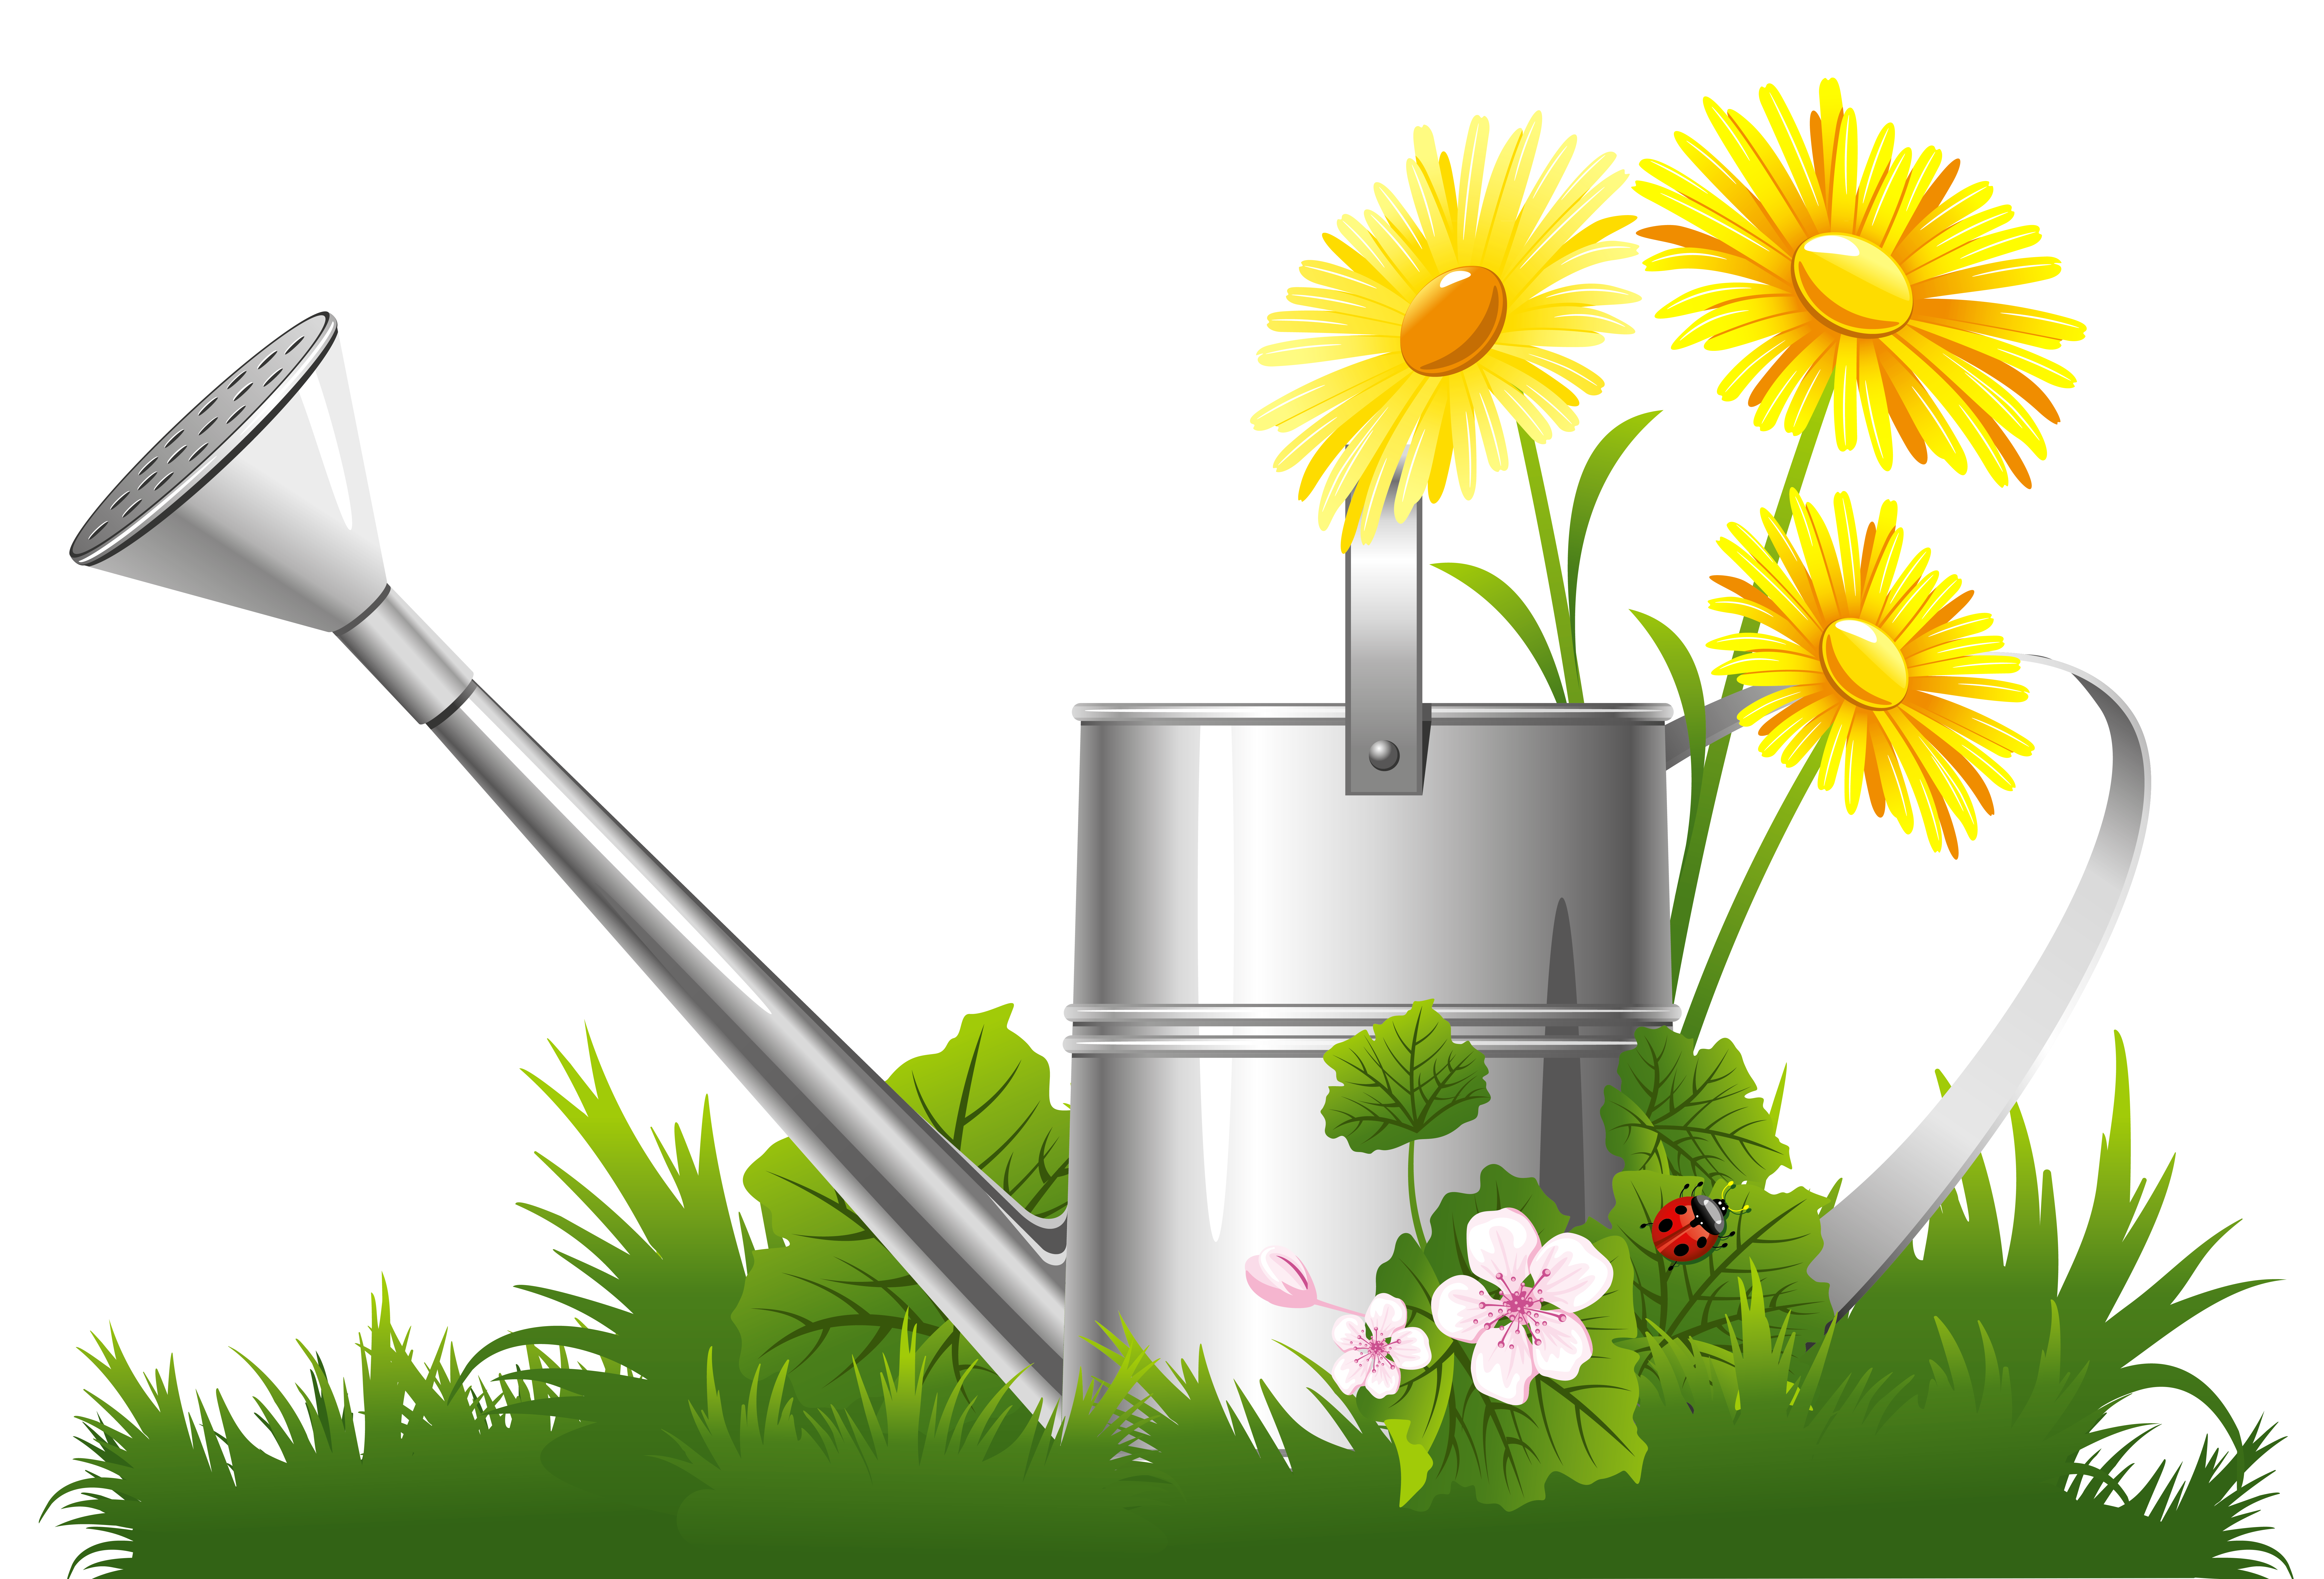 9348x6350 Spring Decoration With Water Can Grass And Flowers Png Clipart